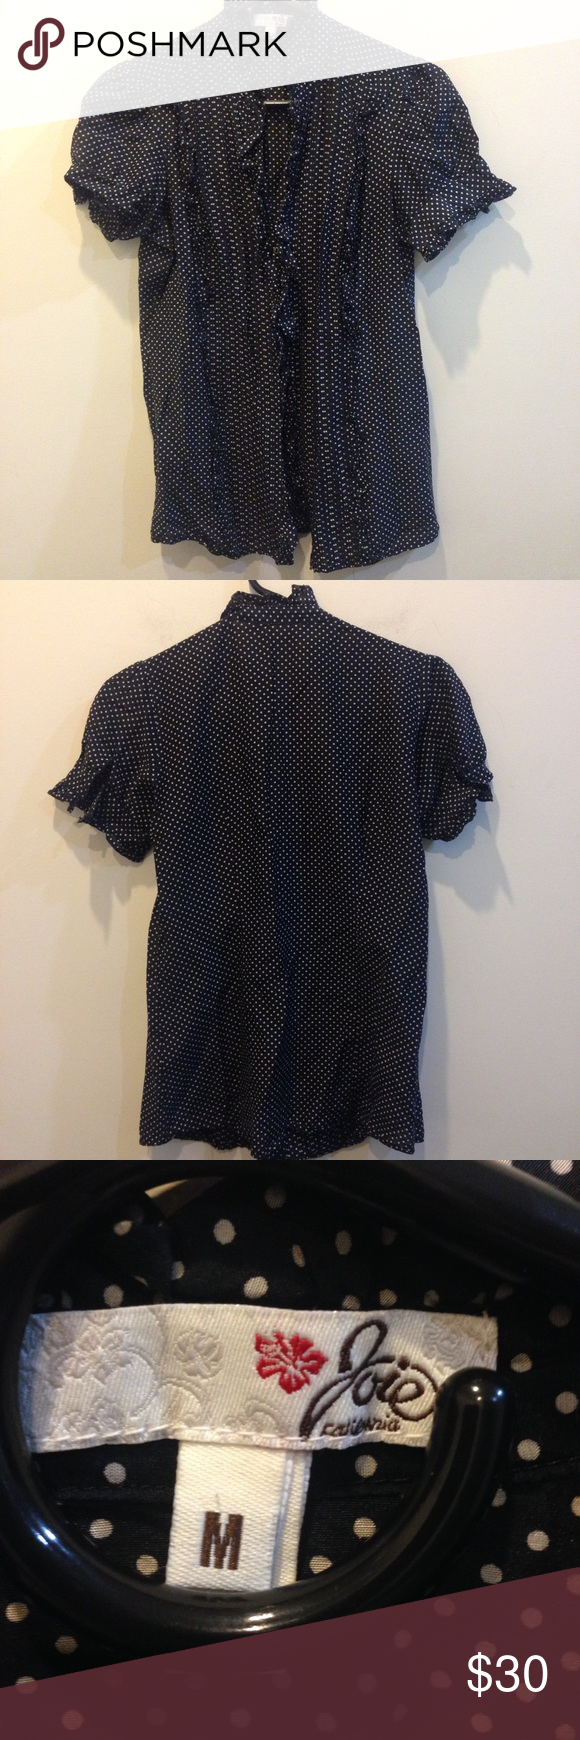 Joie Polka Dot Silk Blend Button Down Shirt Joie California top with a black and white polka dot pattern and has buttons down the center. Buttons on either sleeves hems. Silk blend and is a size medium. Joie Tops Button Down Shirts